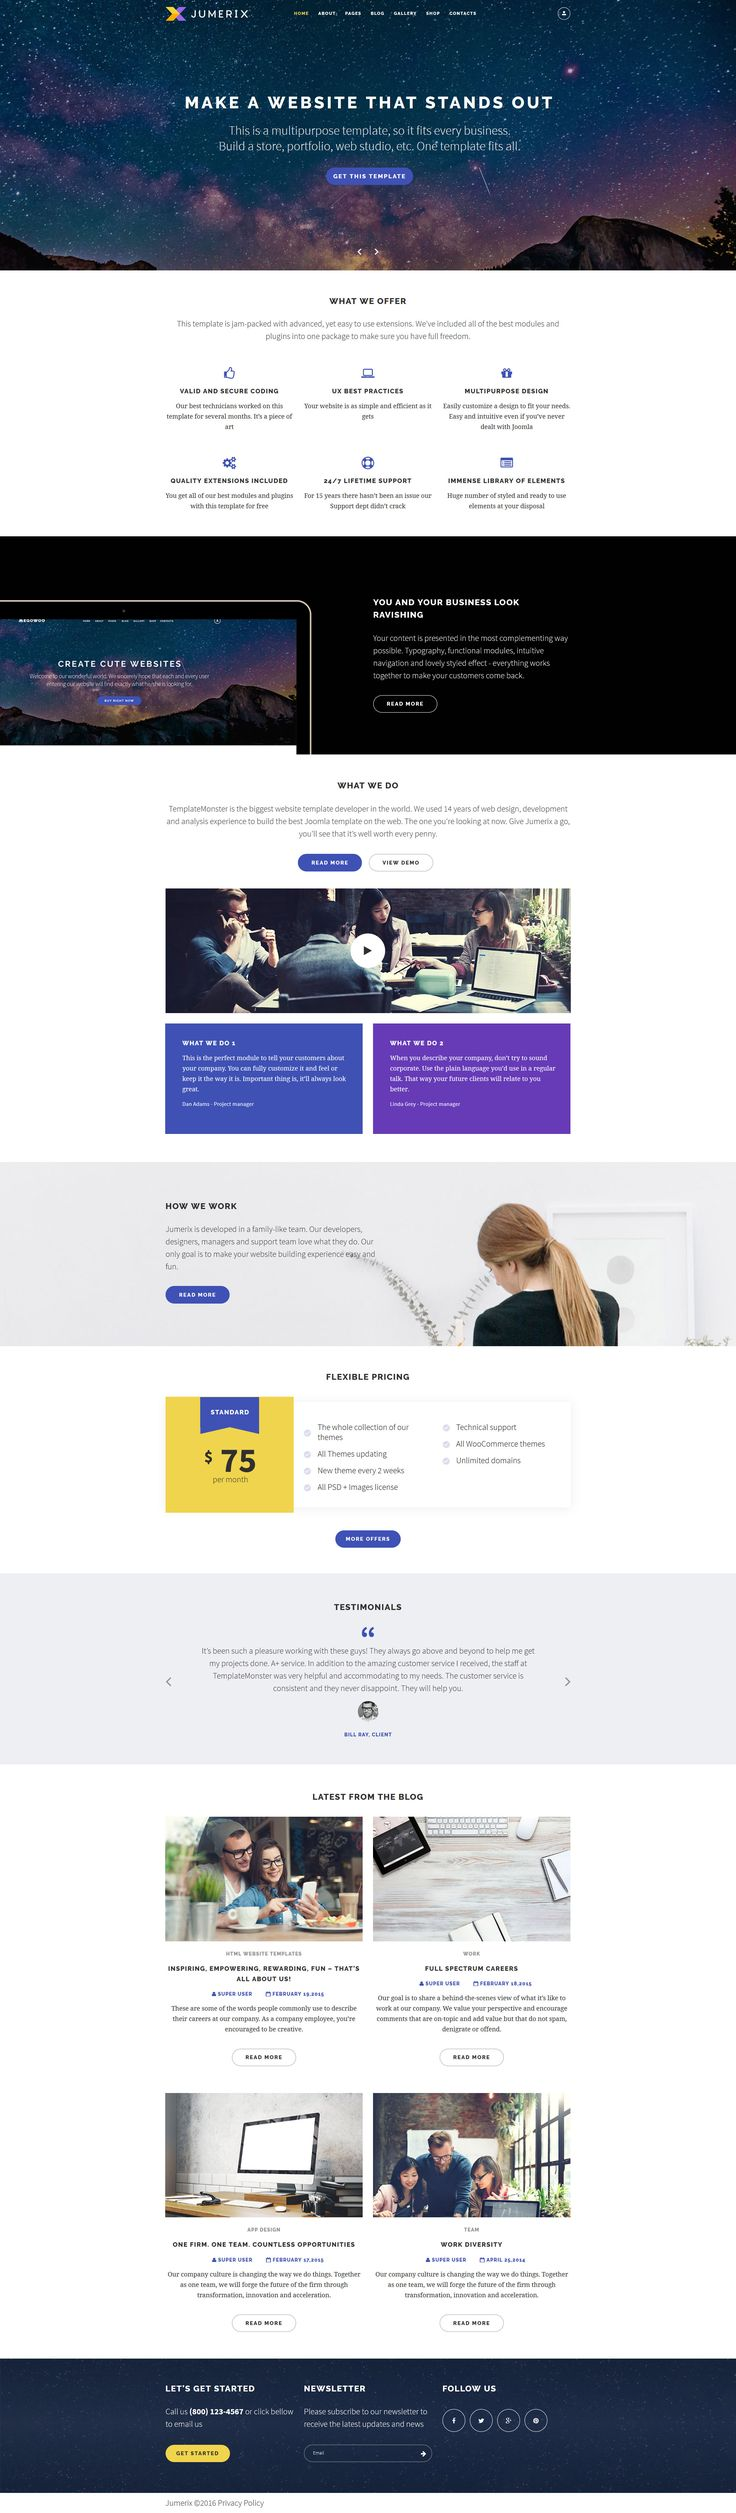 541 best images about webdesign on pinterest photography